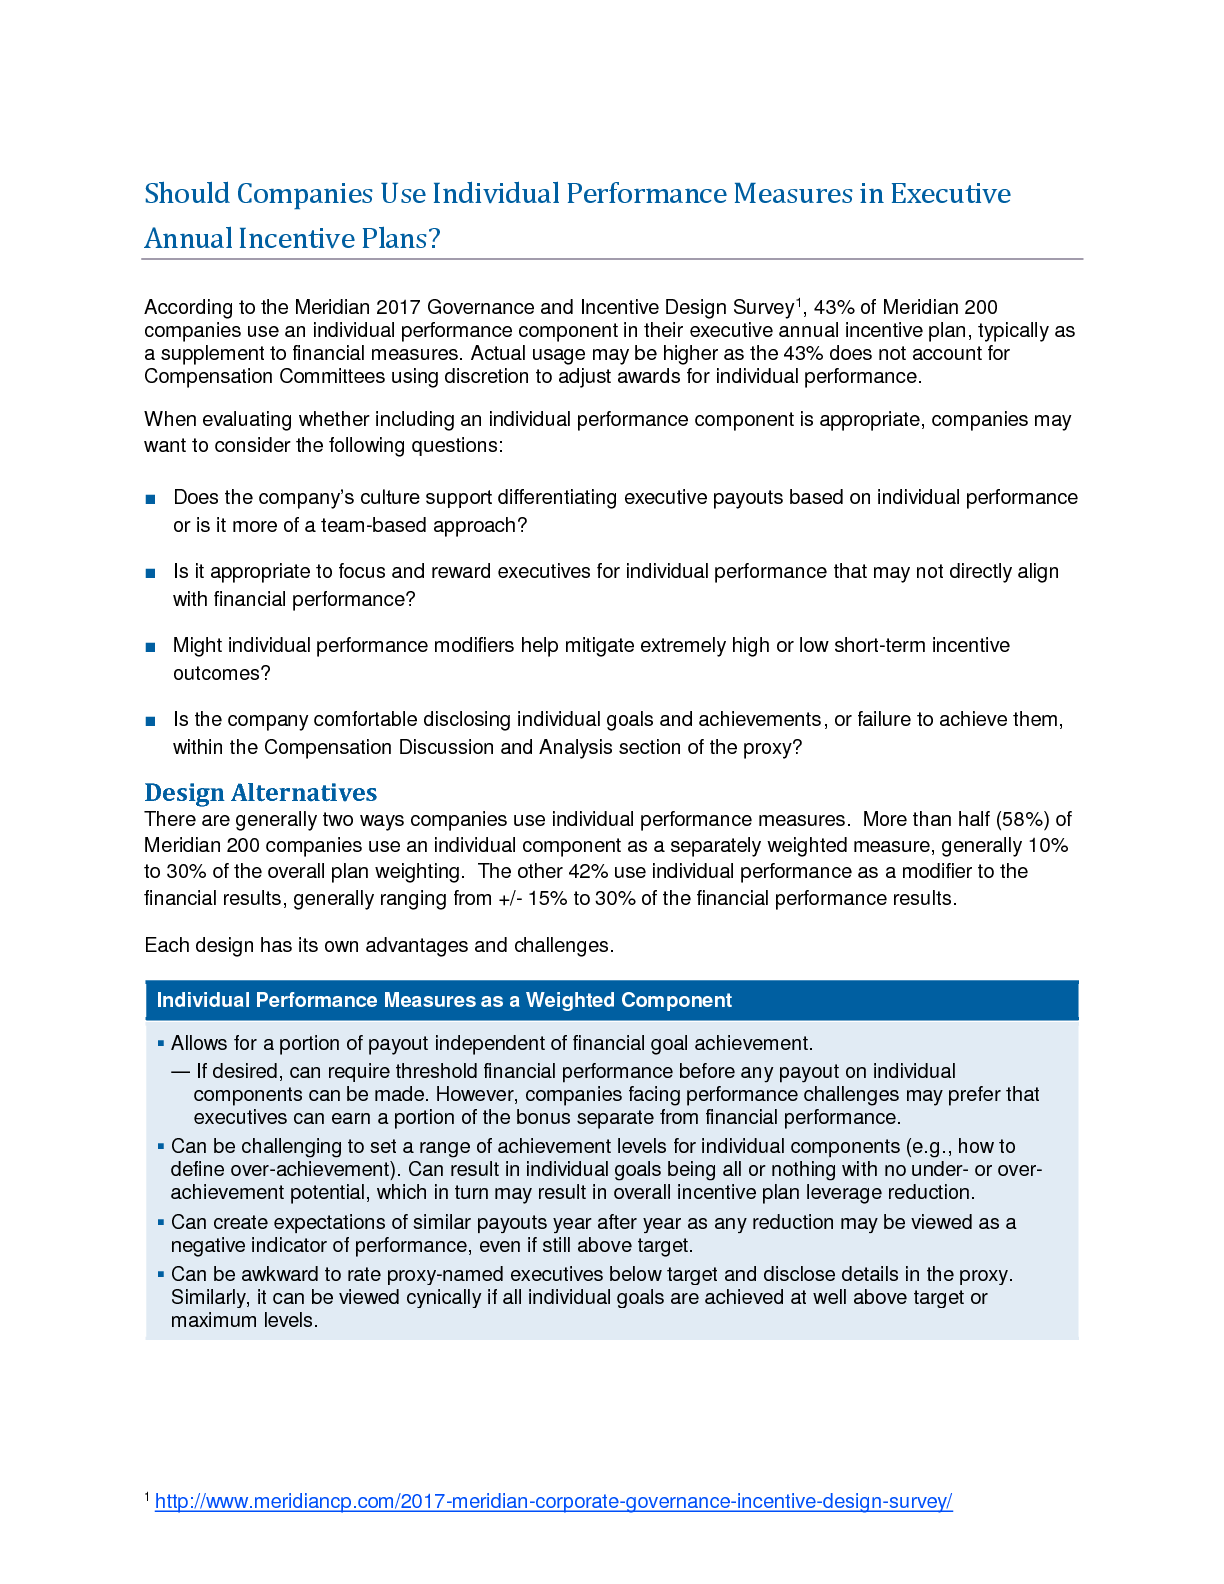 Should Companies Use Individual Performance Measures in Executive Annual Incentive Plans? (PDF)